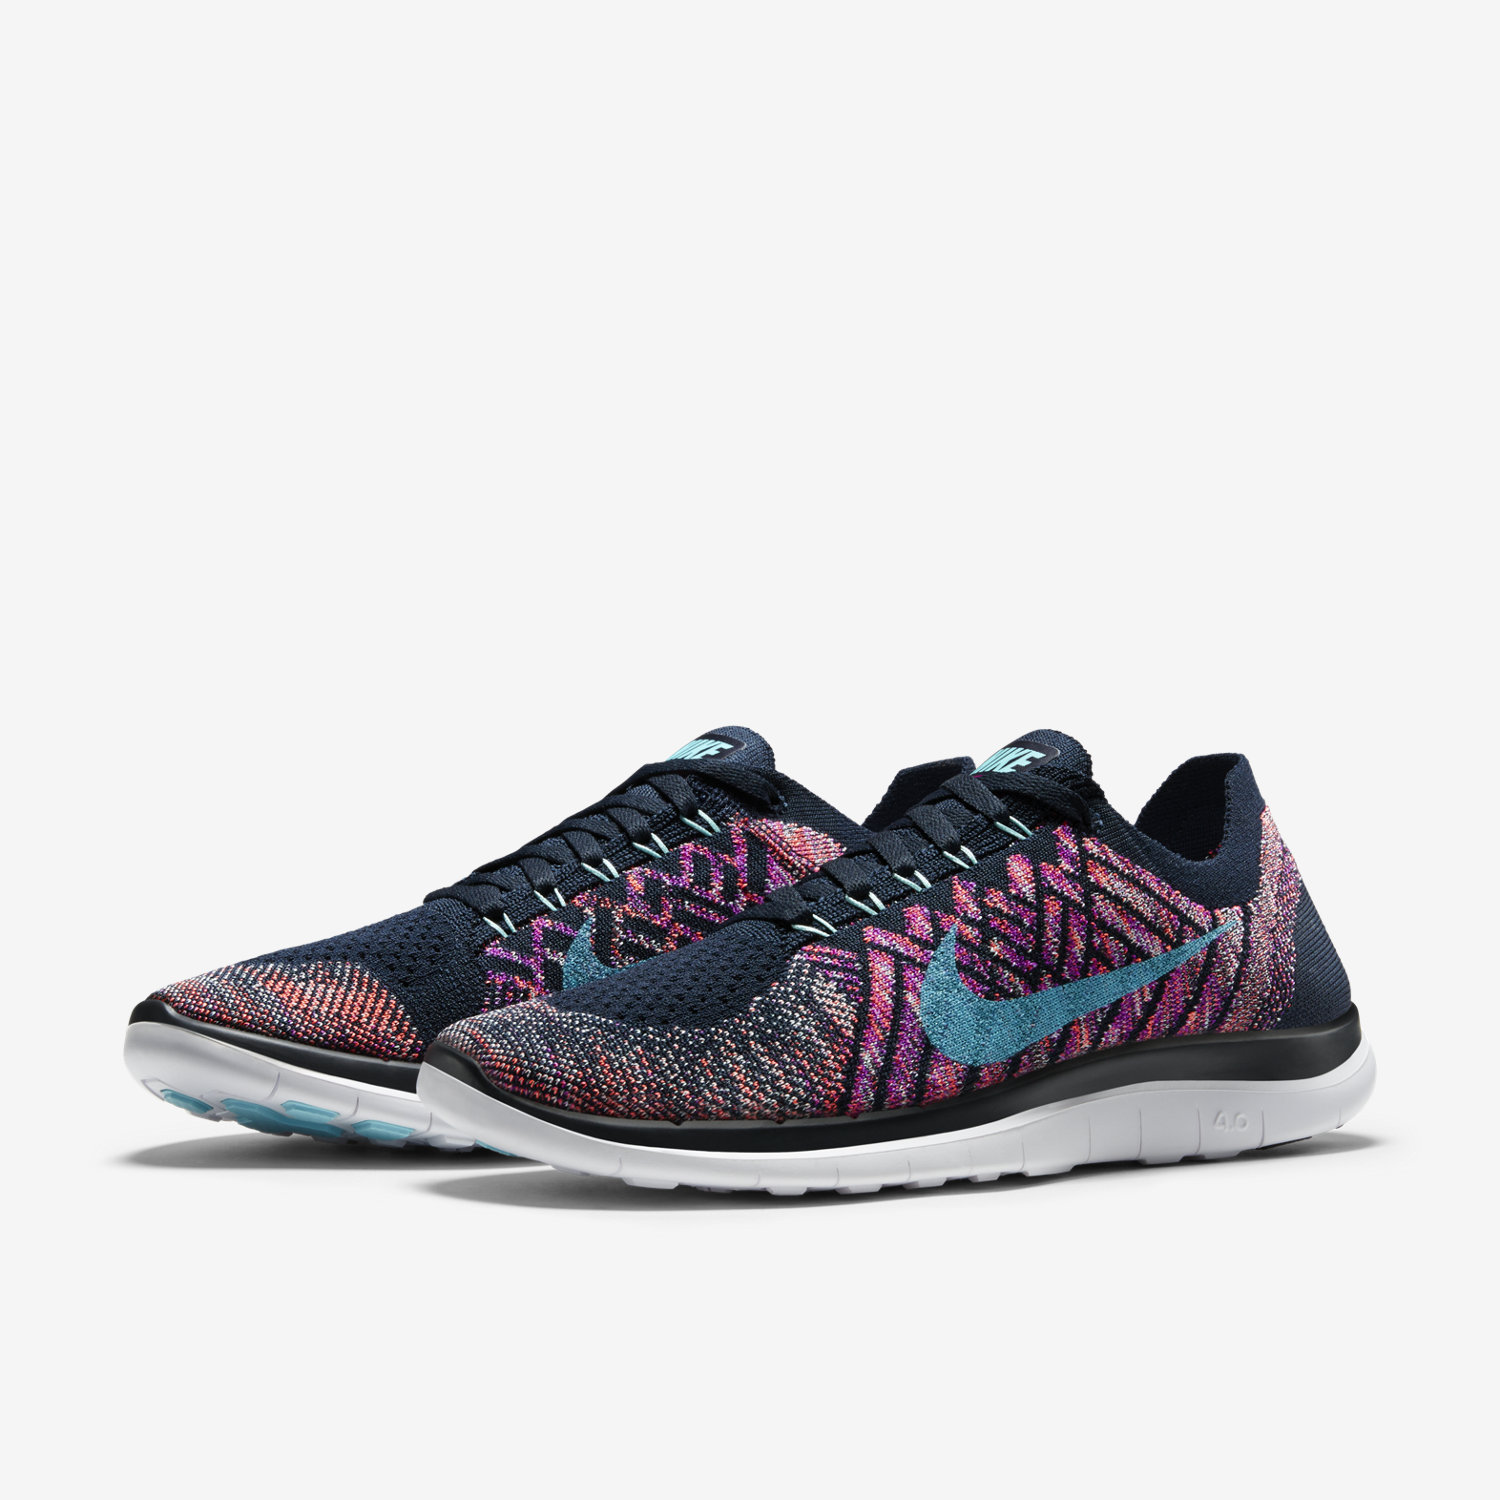 new nike free 4 0 flyknit. Black Bedroom Furniture Sets. Home Design Ideas